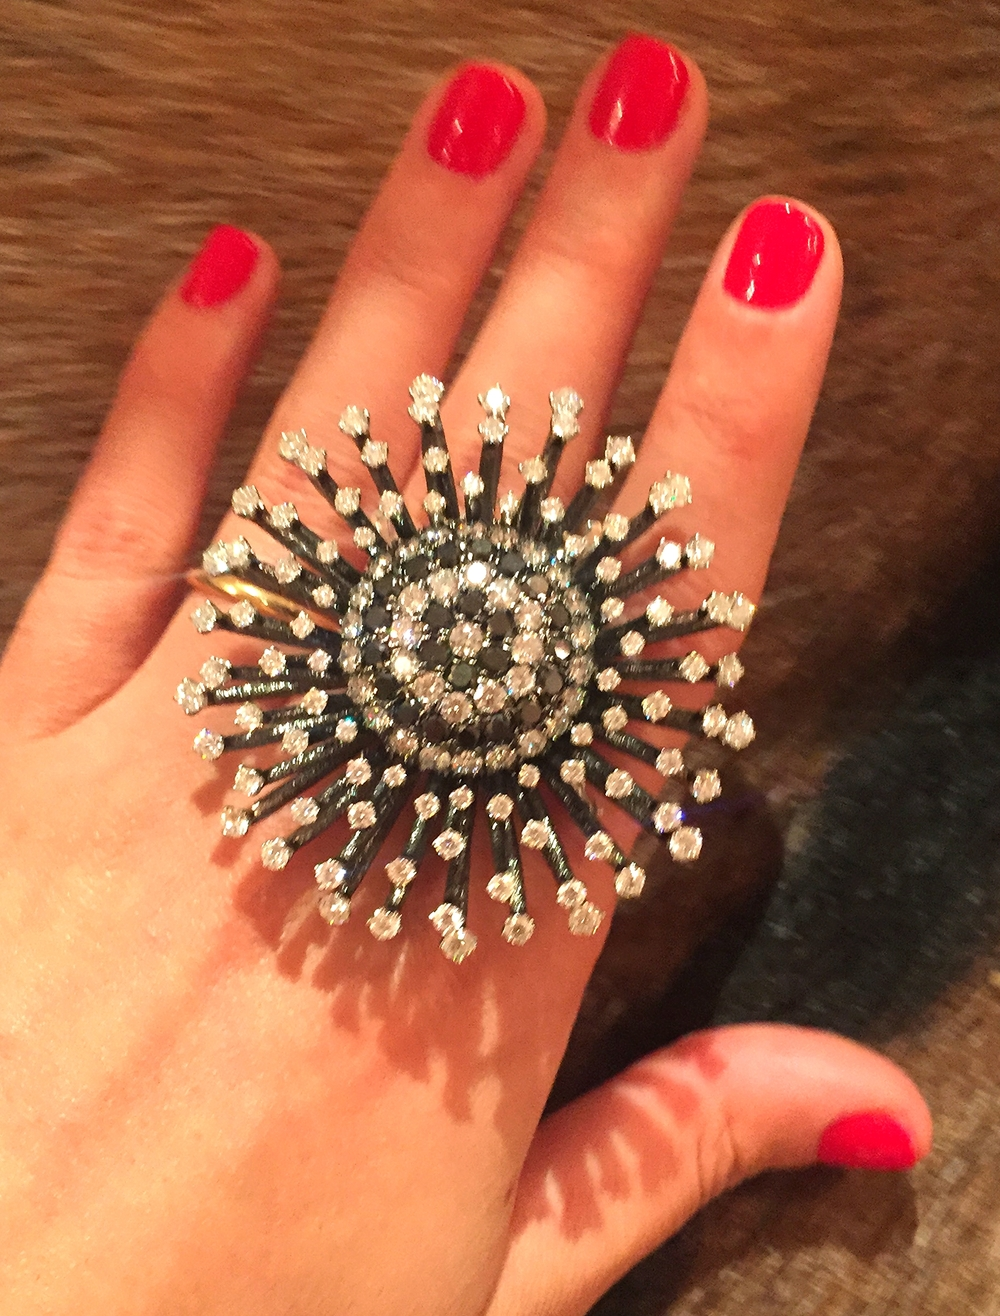 Another great convertible piece. A pin and a ring in one!